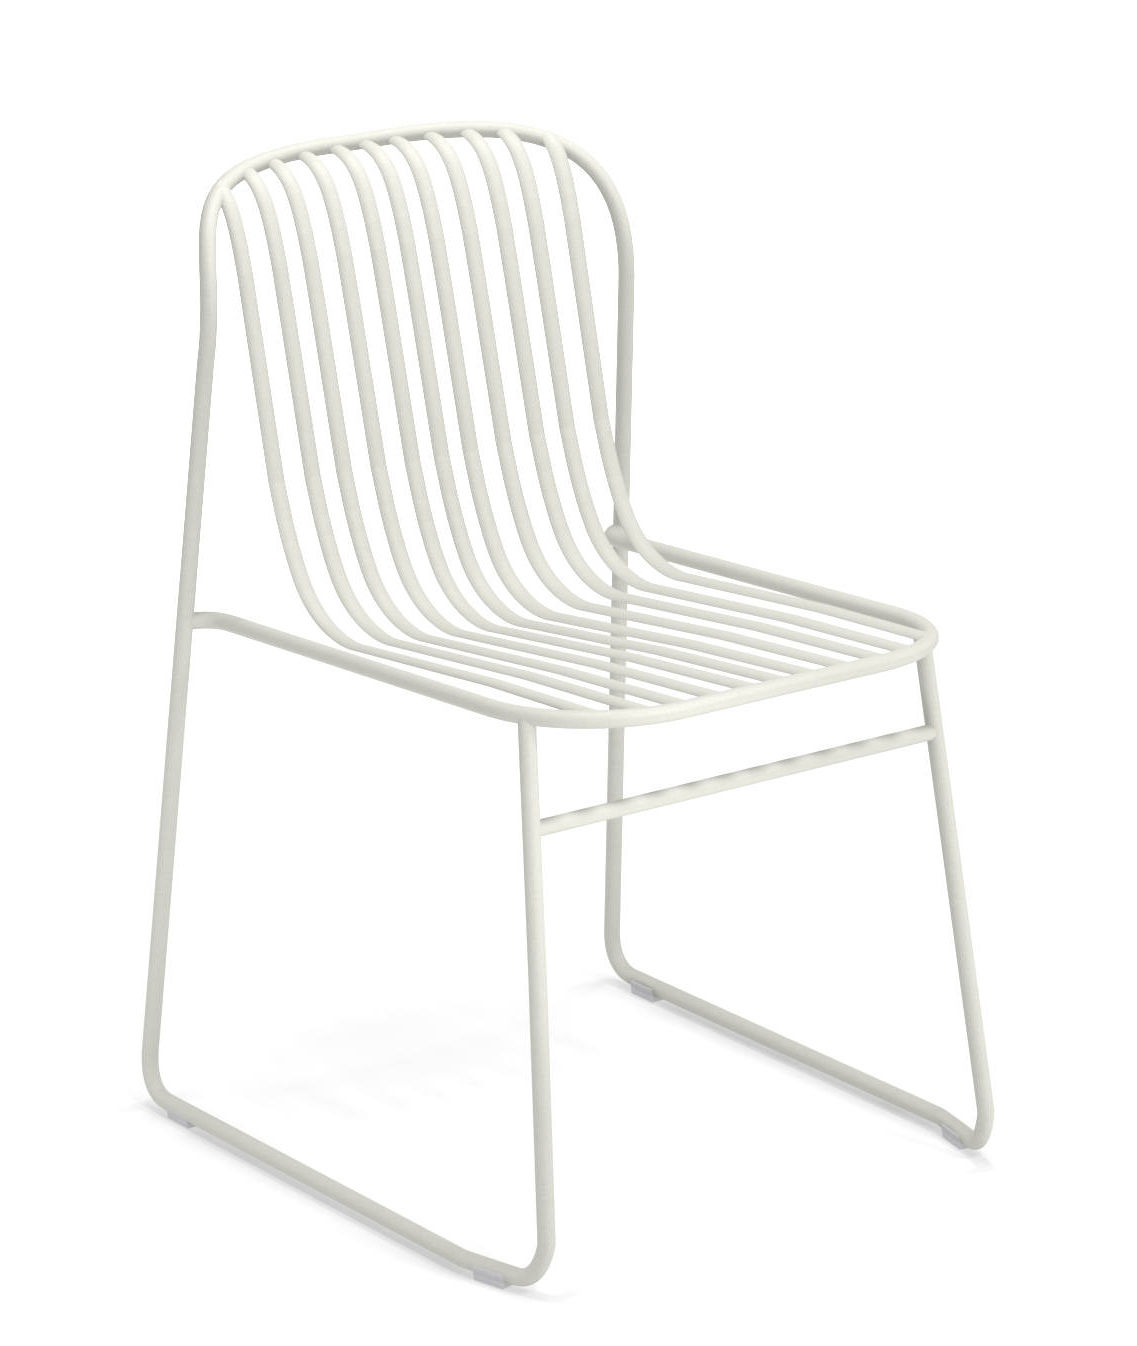 Furniture - Chairs - Riviera Stacking chair - / Metal by Emu - White - Varnished steel